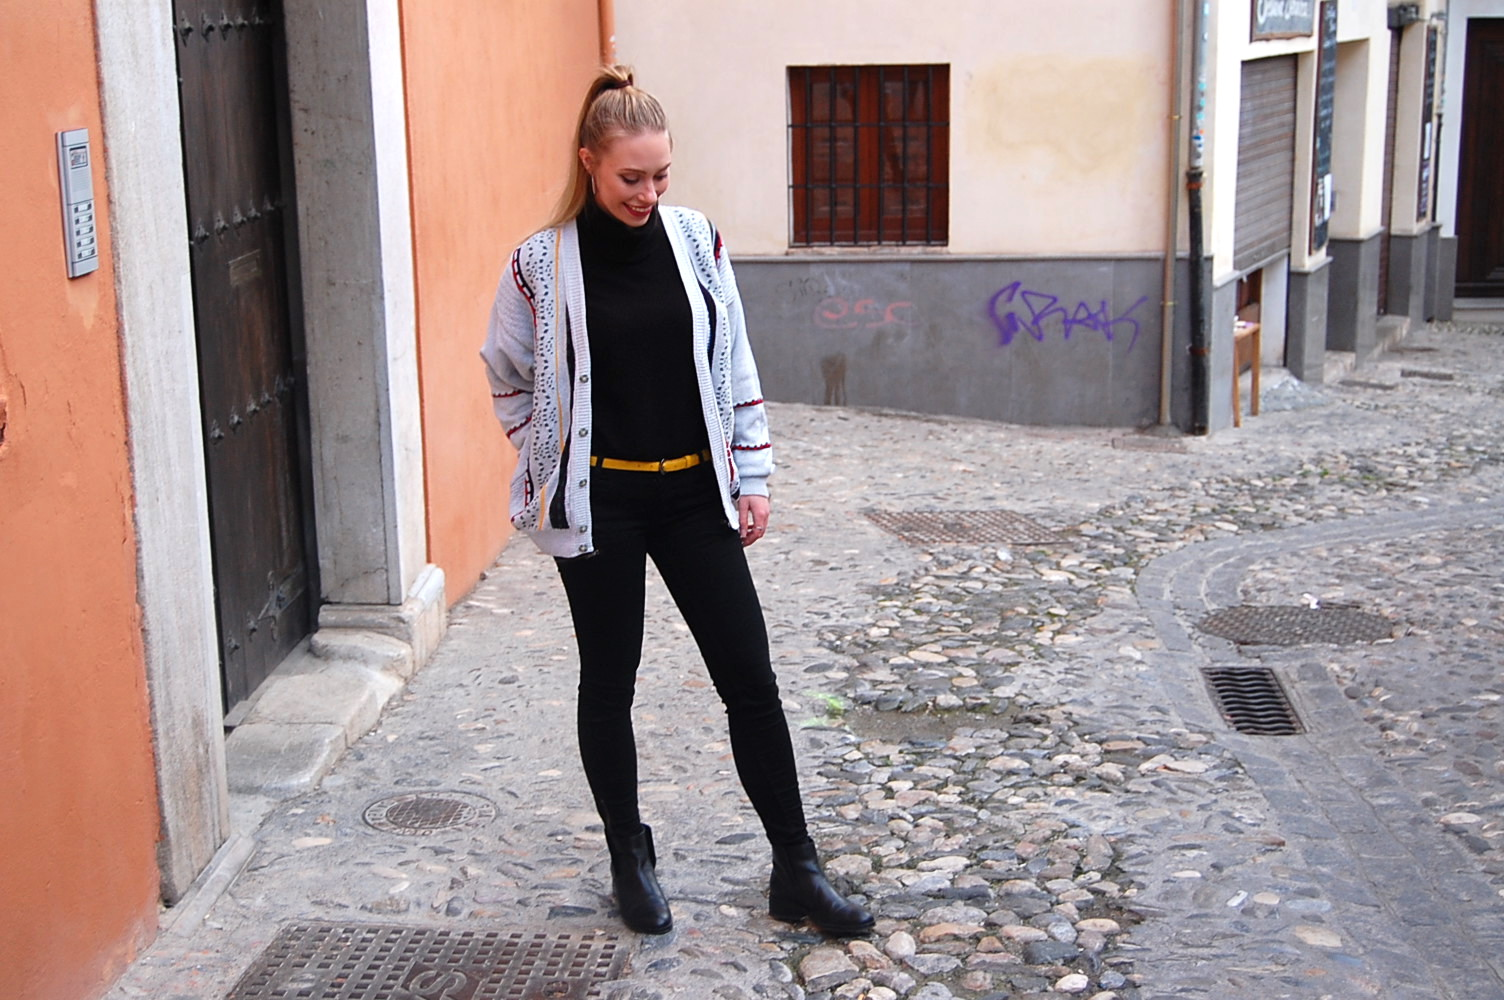 Sweater weather in Granada?